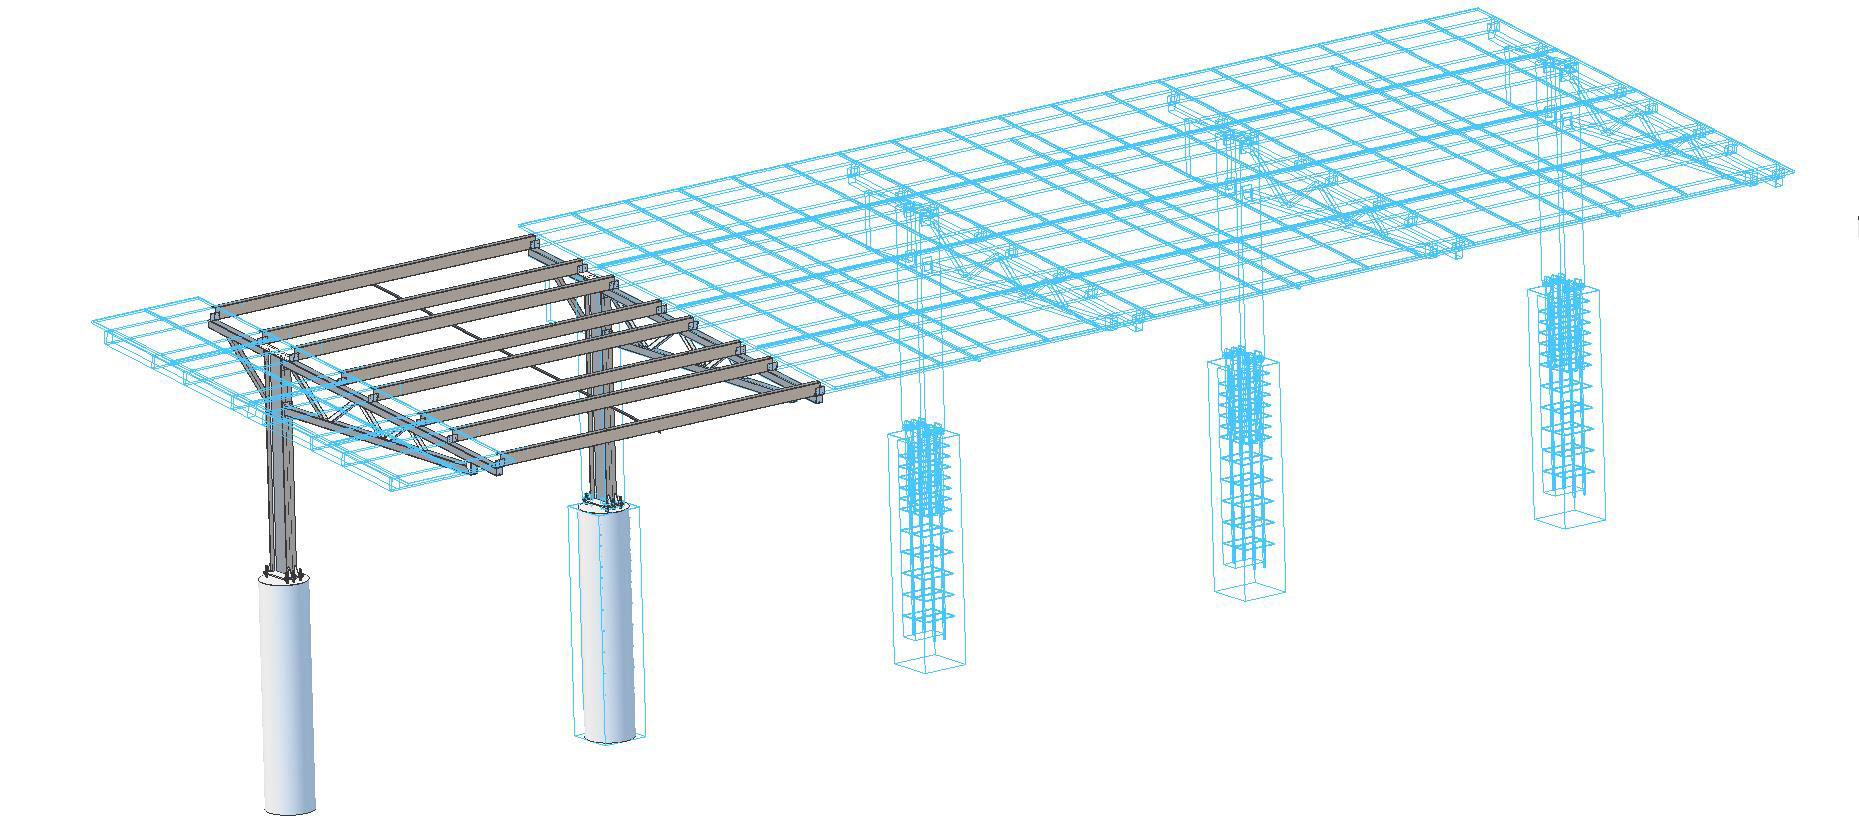 L-Frame solar carport sections.